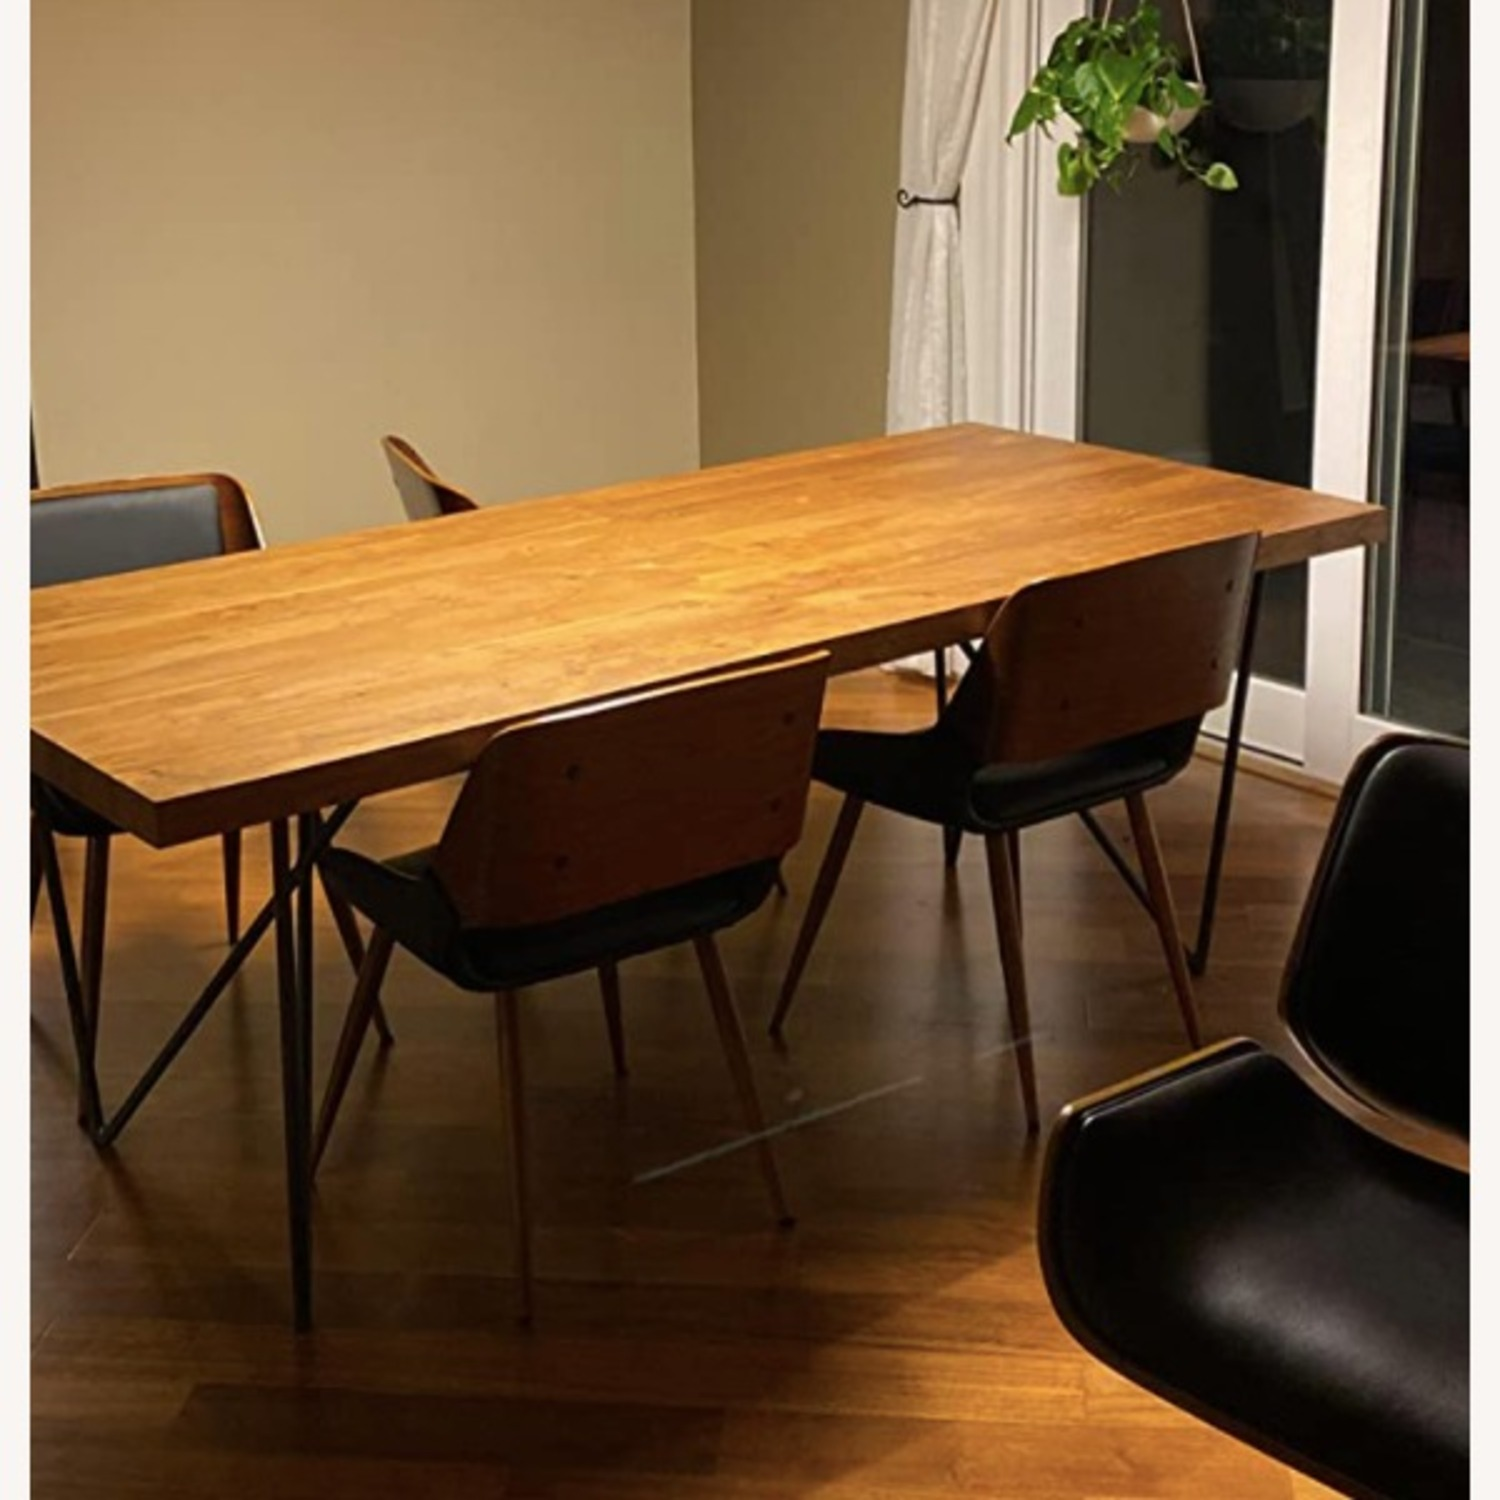 Mid Century Modern Faux Leather Dining Chair - image-7